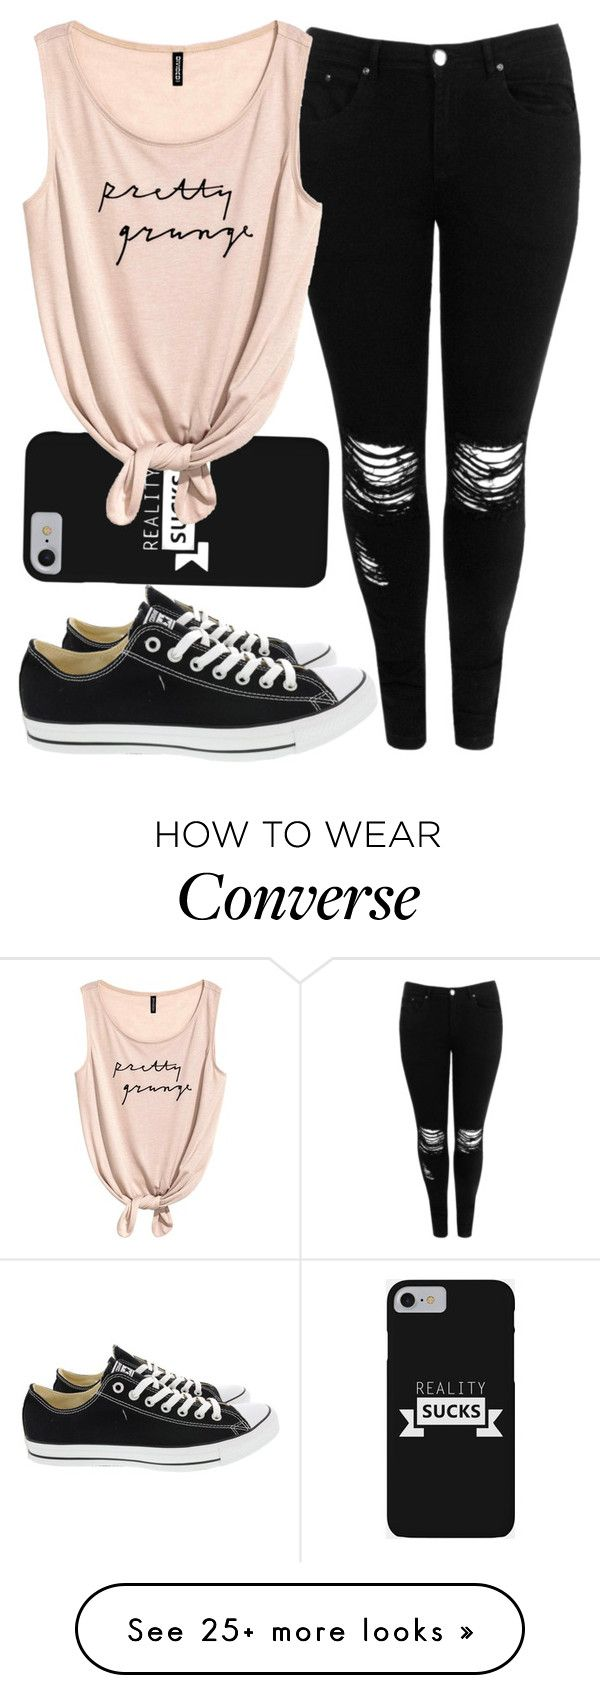 Untitled #135 by iouzzani on Polyvore featuring Boohoo and Converse